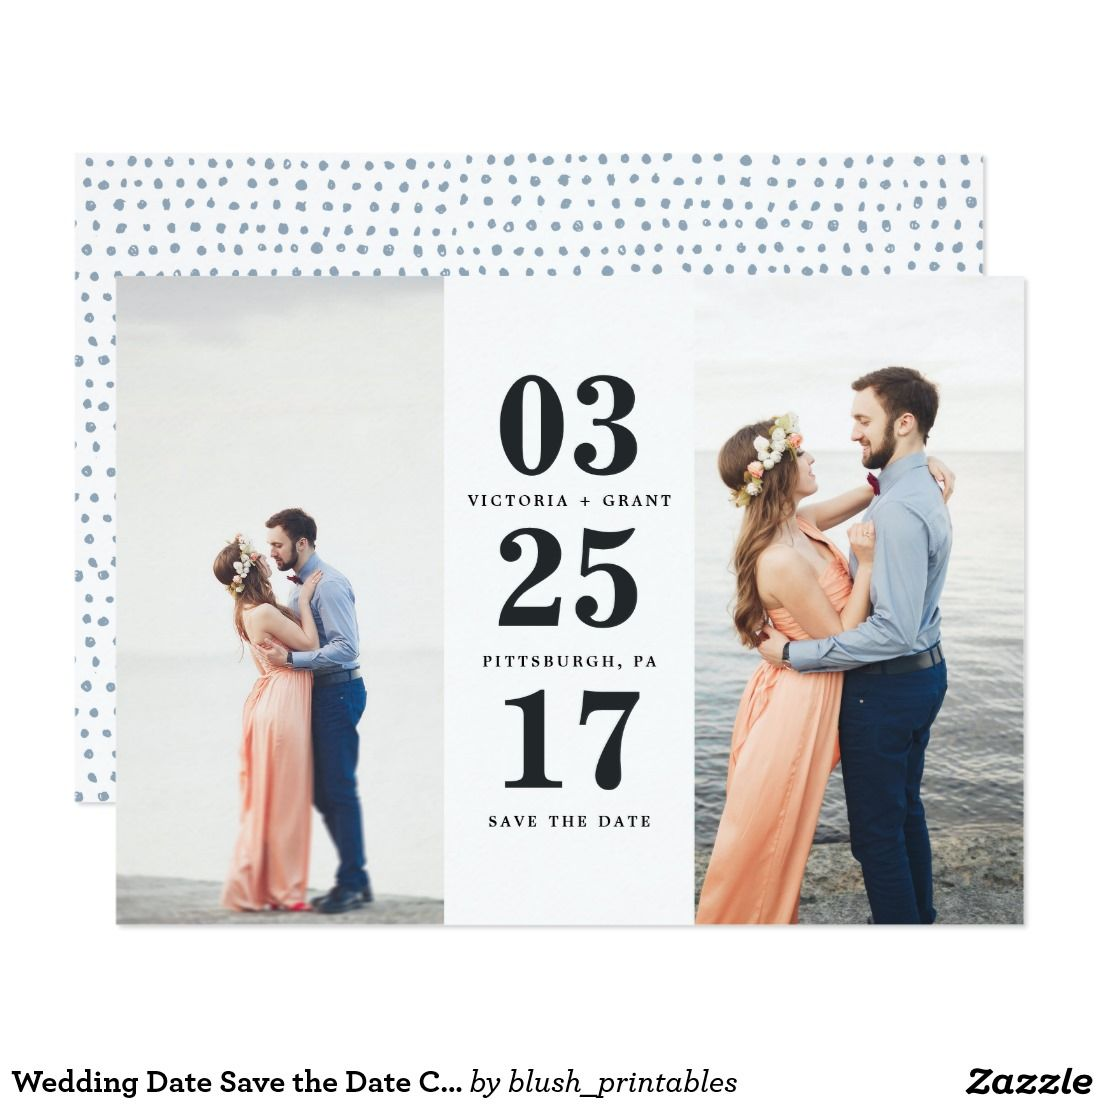 Wedding Date Save the Date Card Gorgeous, on-trend save the date announcements featuring your favorite engagement photos. Lovely typography and all white text makes this design truly stand out. Inspired by the sea, these save the date cards are classic and classy with a chic yet traditional touch.